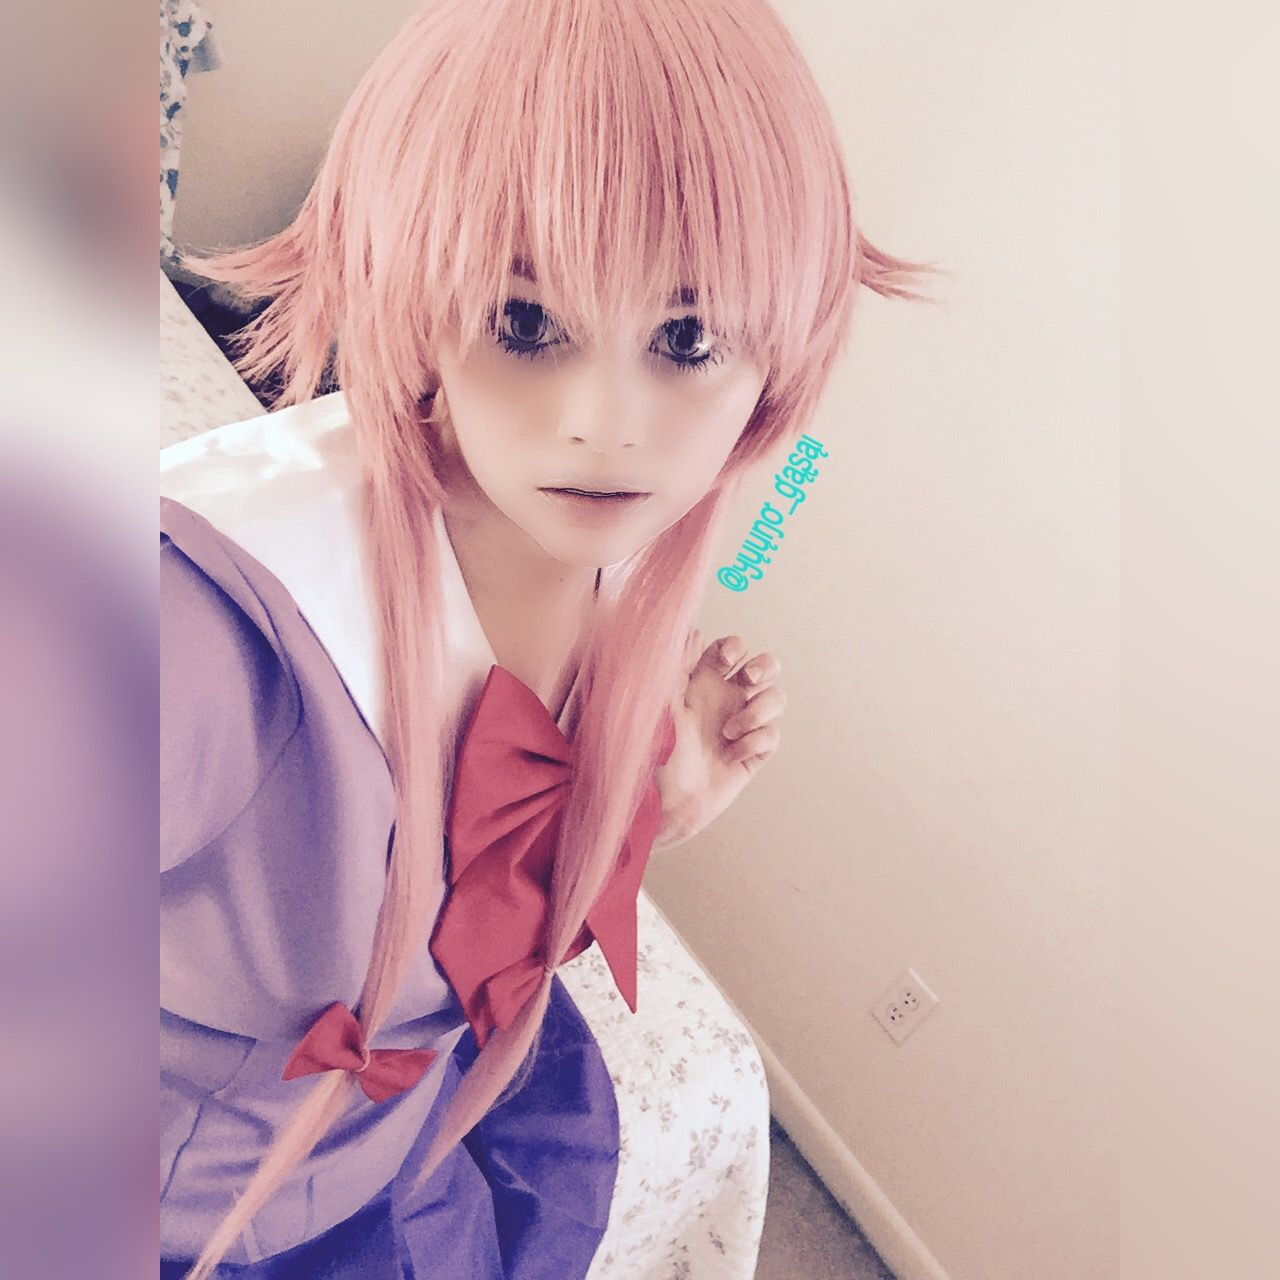 When You Take A Really Bad Cosplay Picture My Yuno Gasai Cosplay Everyone [ 1280 x 1280 Pixel ]